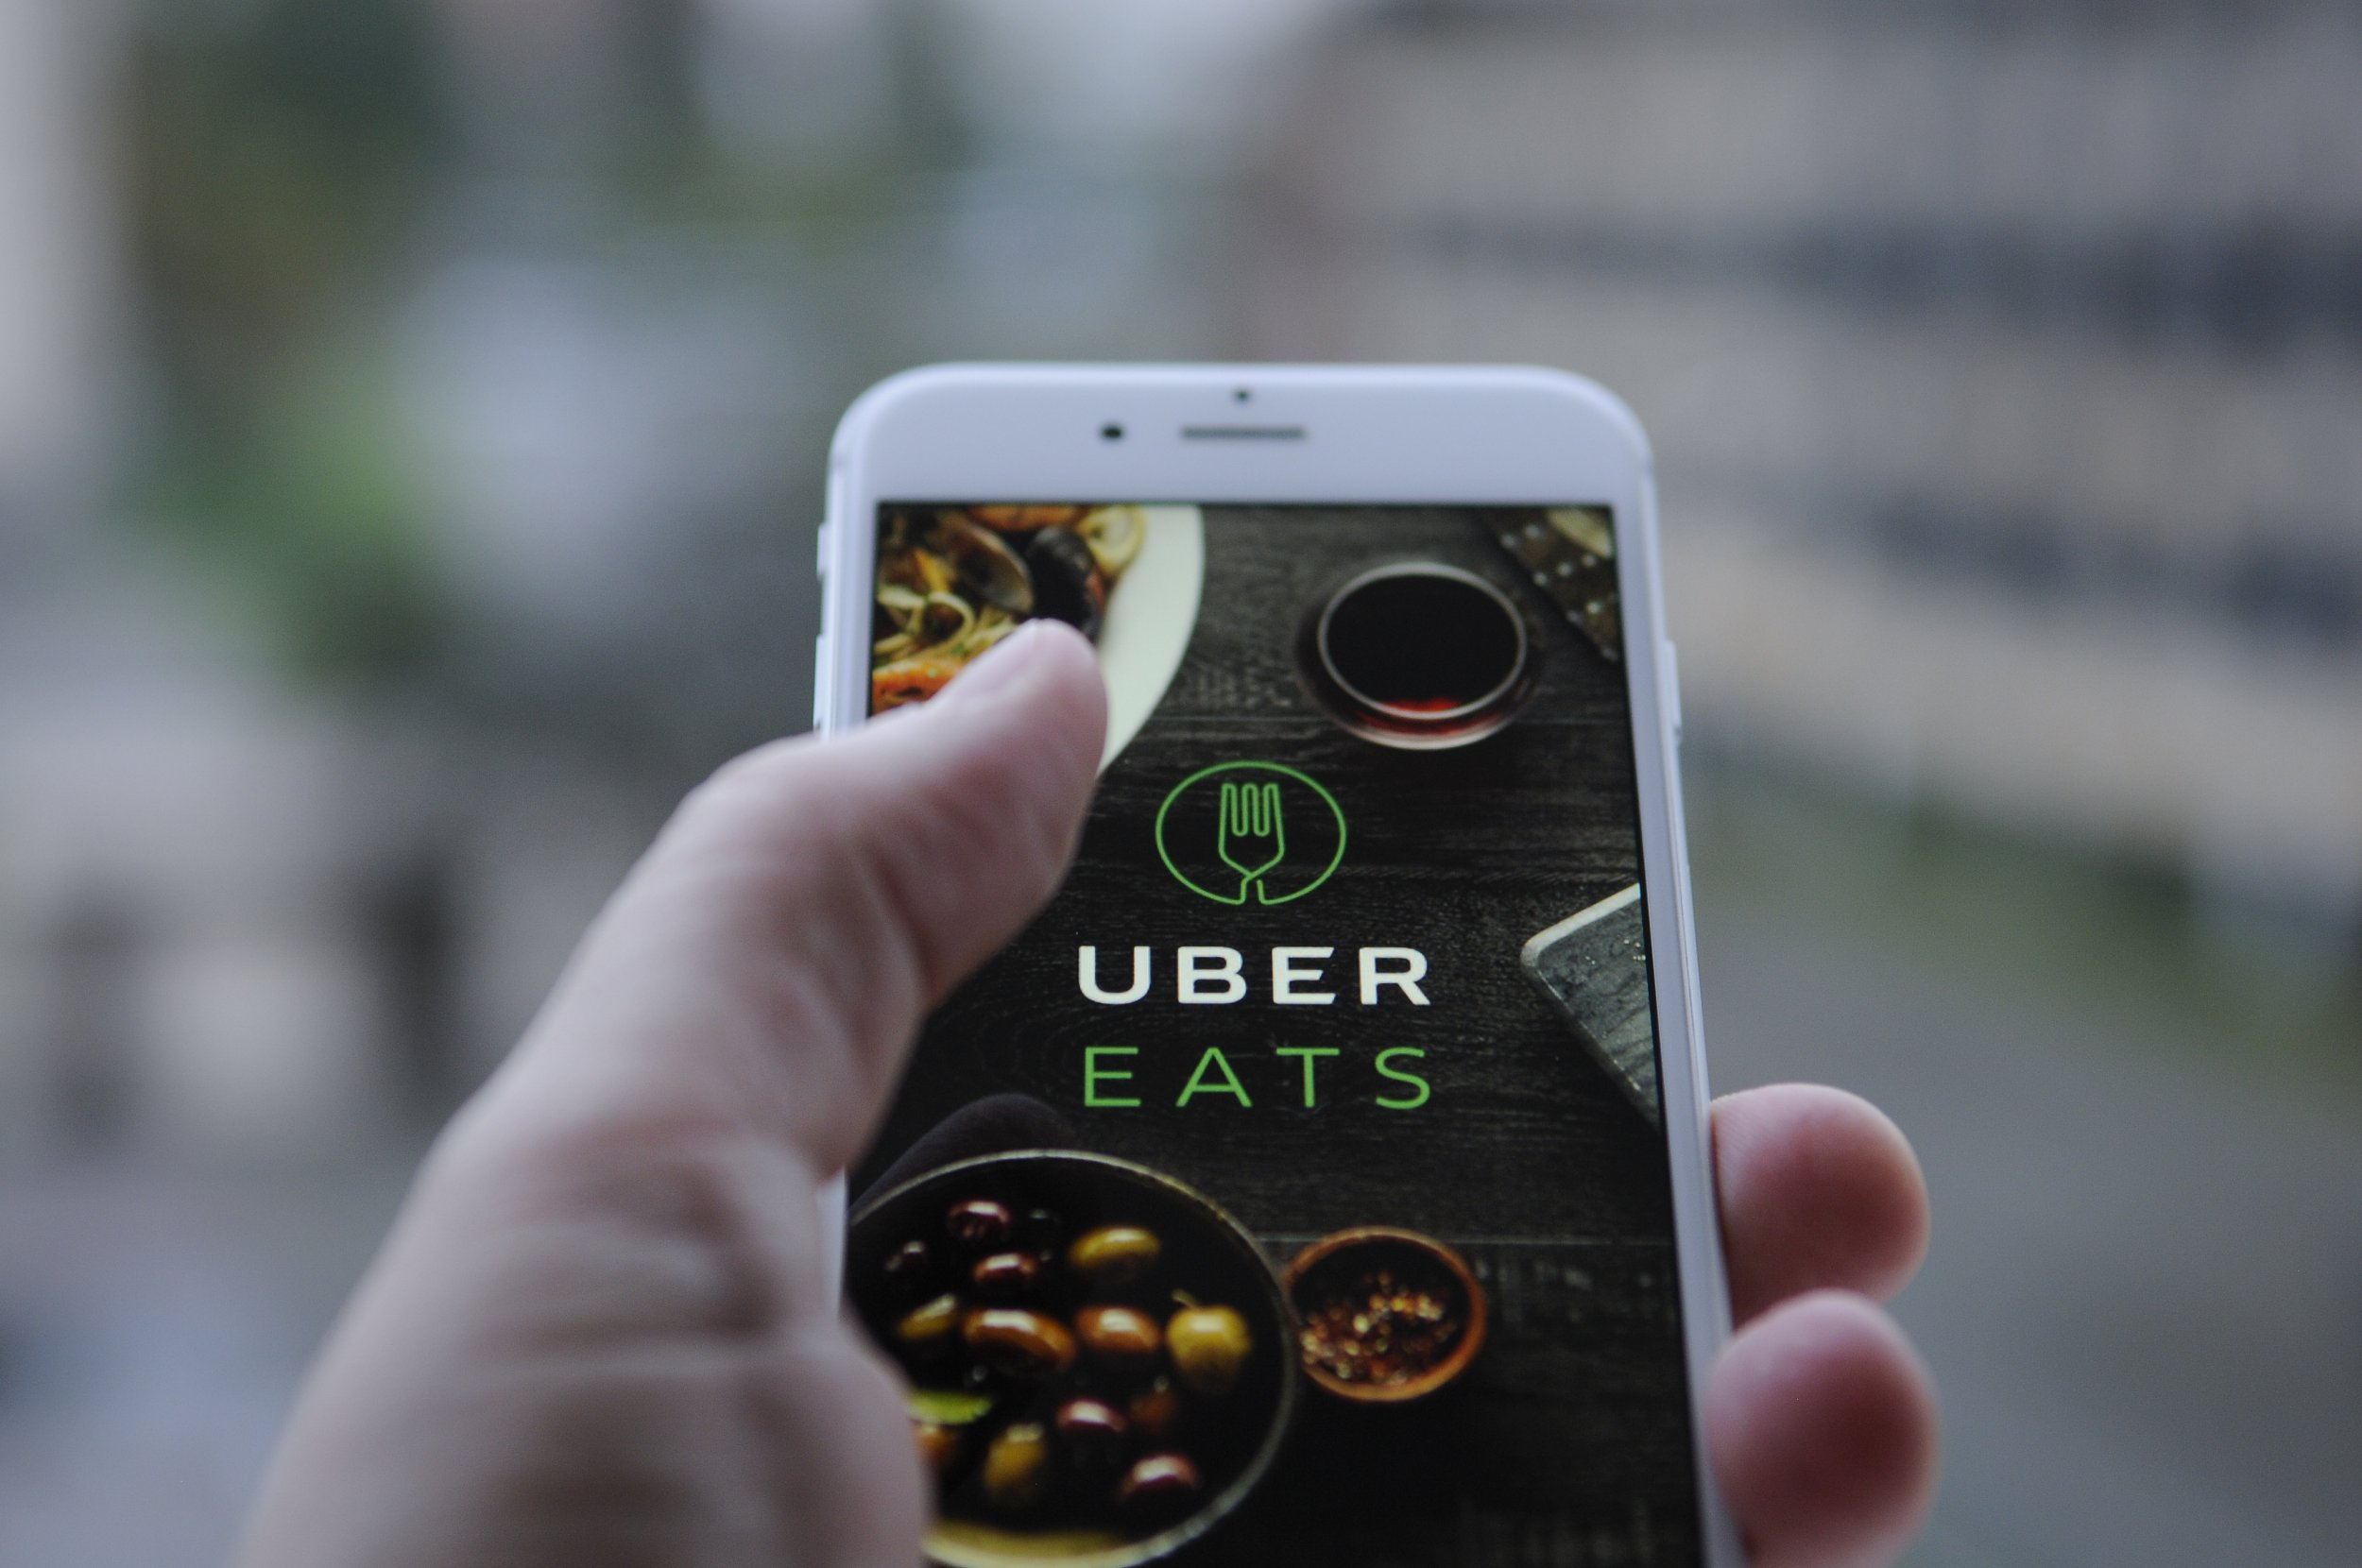 Uber Eats could be about to get even cheaper